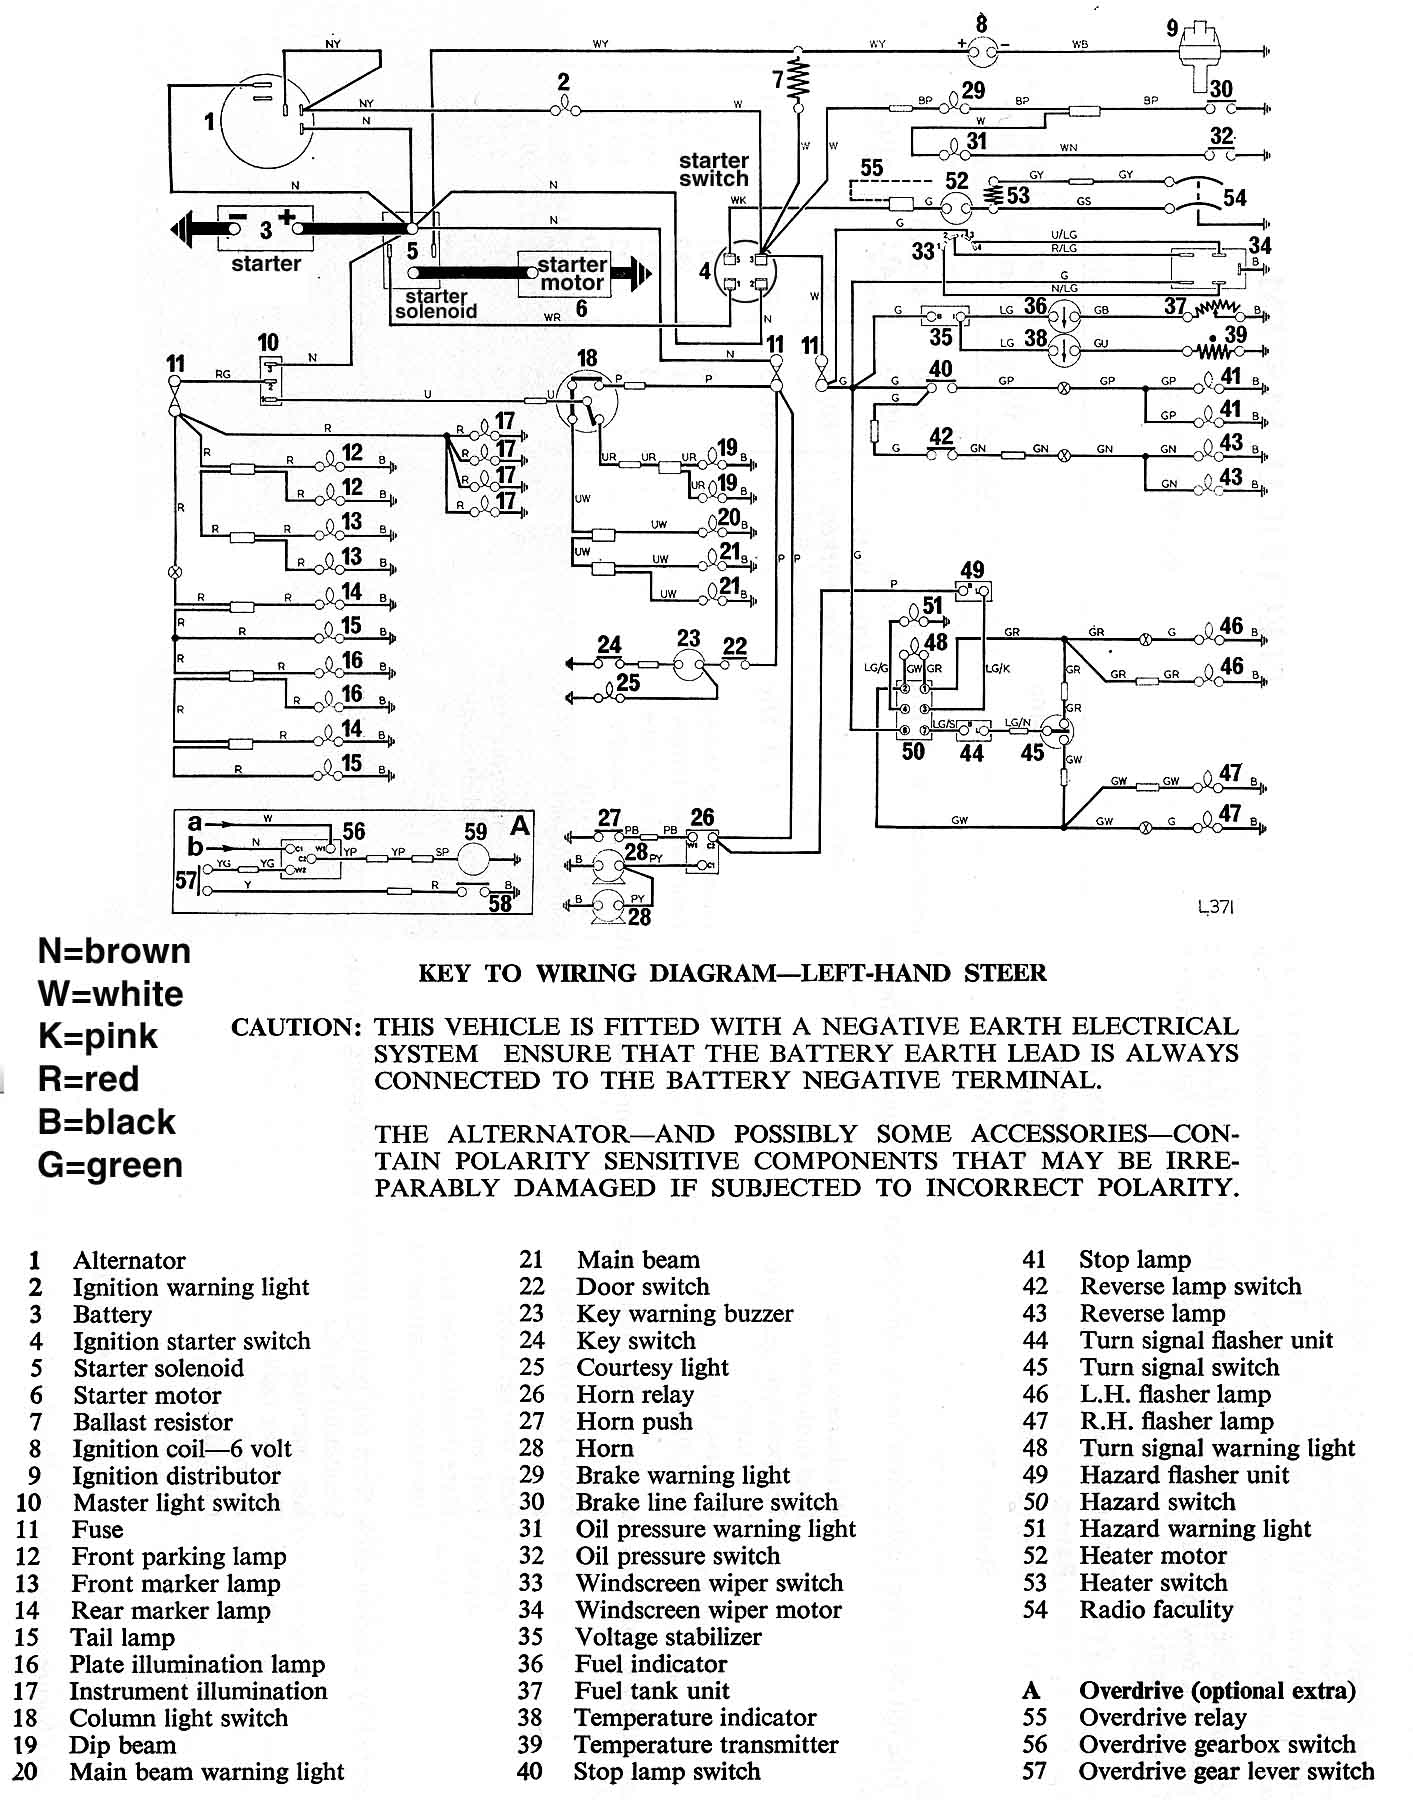 MKIVwire mk4 wiring diagram mk4 tdi wiring diagram \u2022 wiring diagrams j  at edmiracle.co